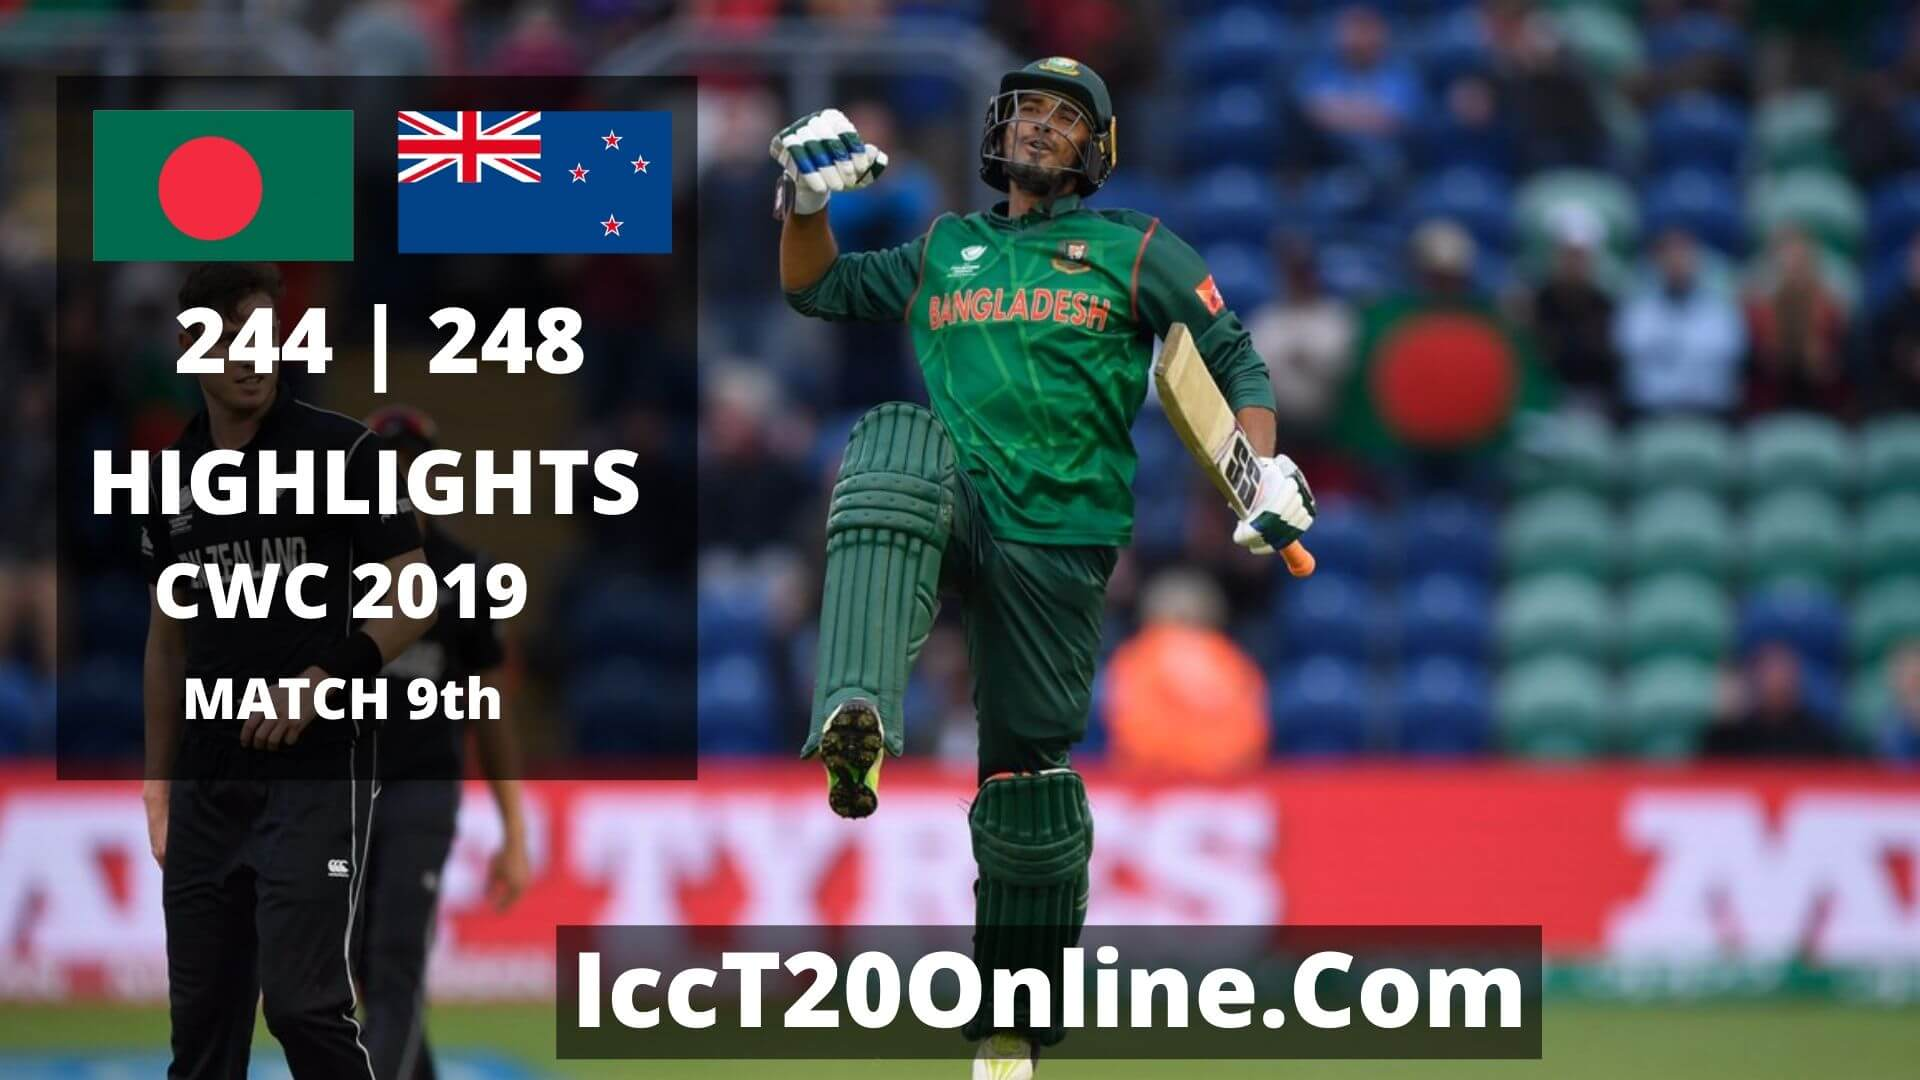 Bangladesh vs New Zealand Highlights CWC 2019 Match 9th